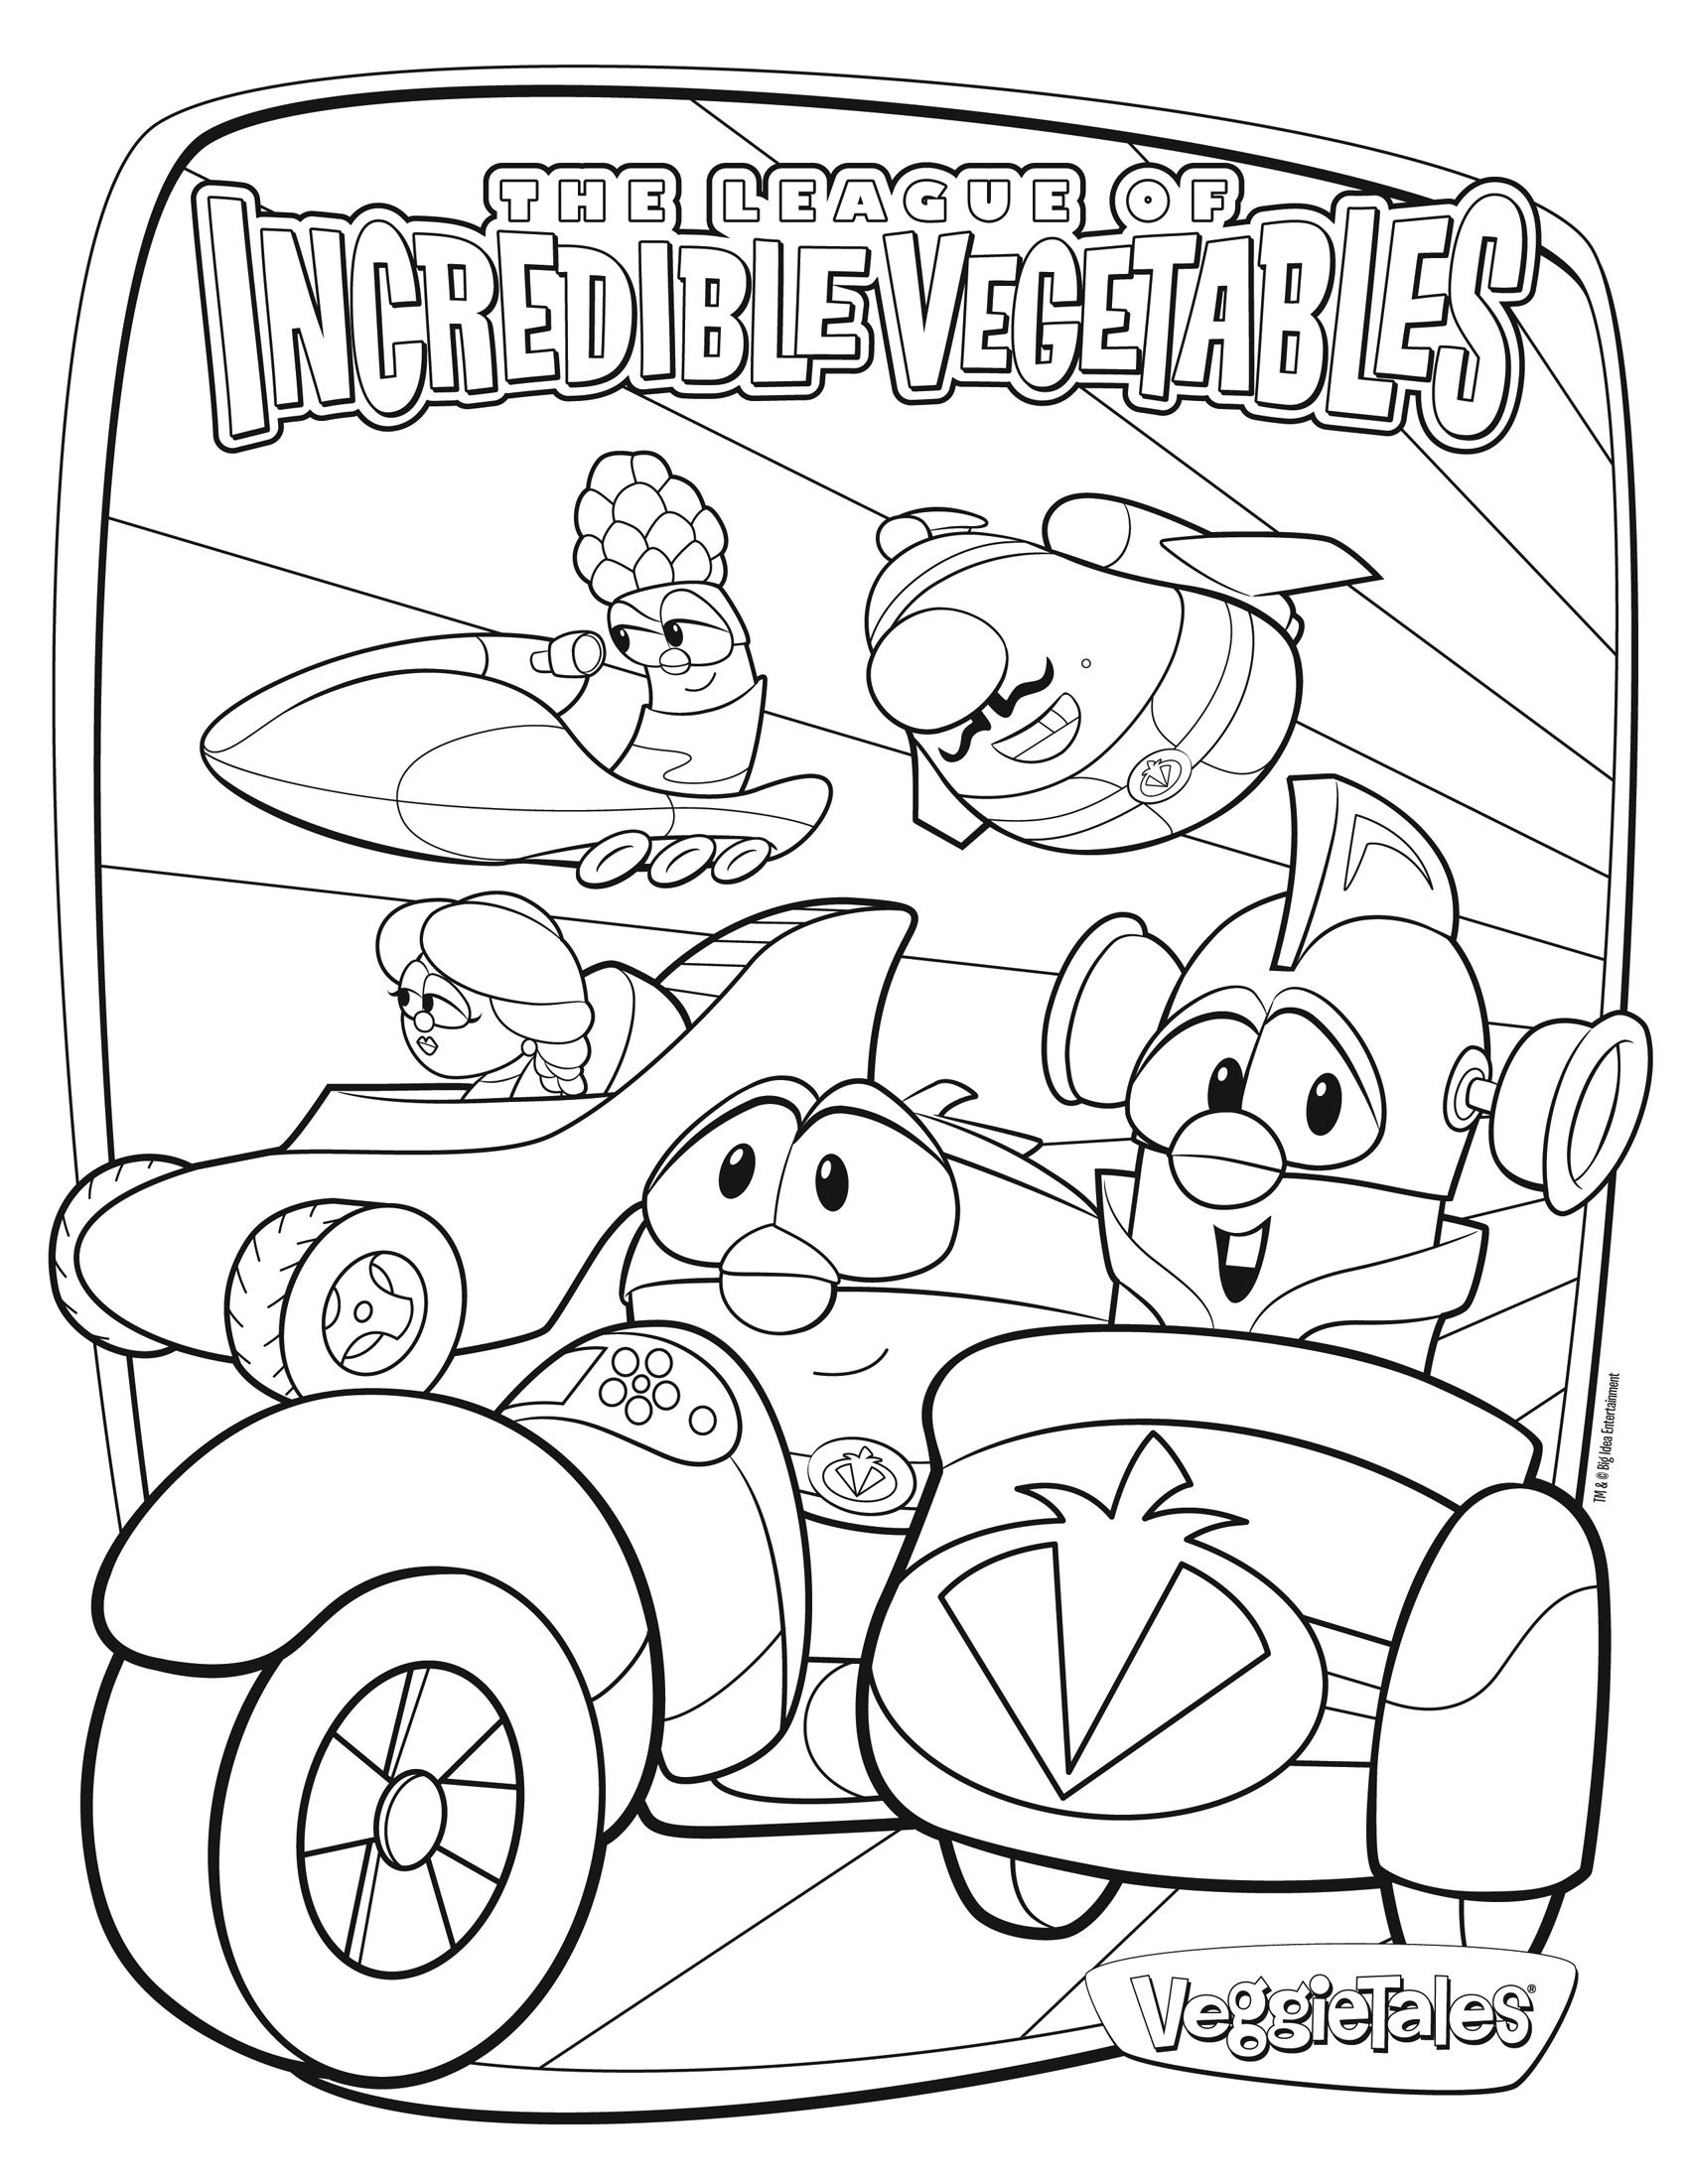 veggietales coloring pages Free VeggieTales Coloring Page (Gracie's favorite movie right now  veggietales coloring pages